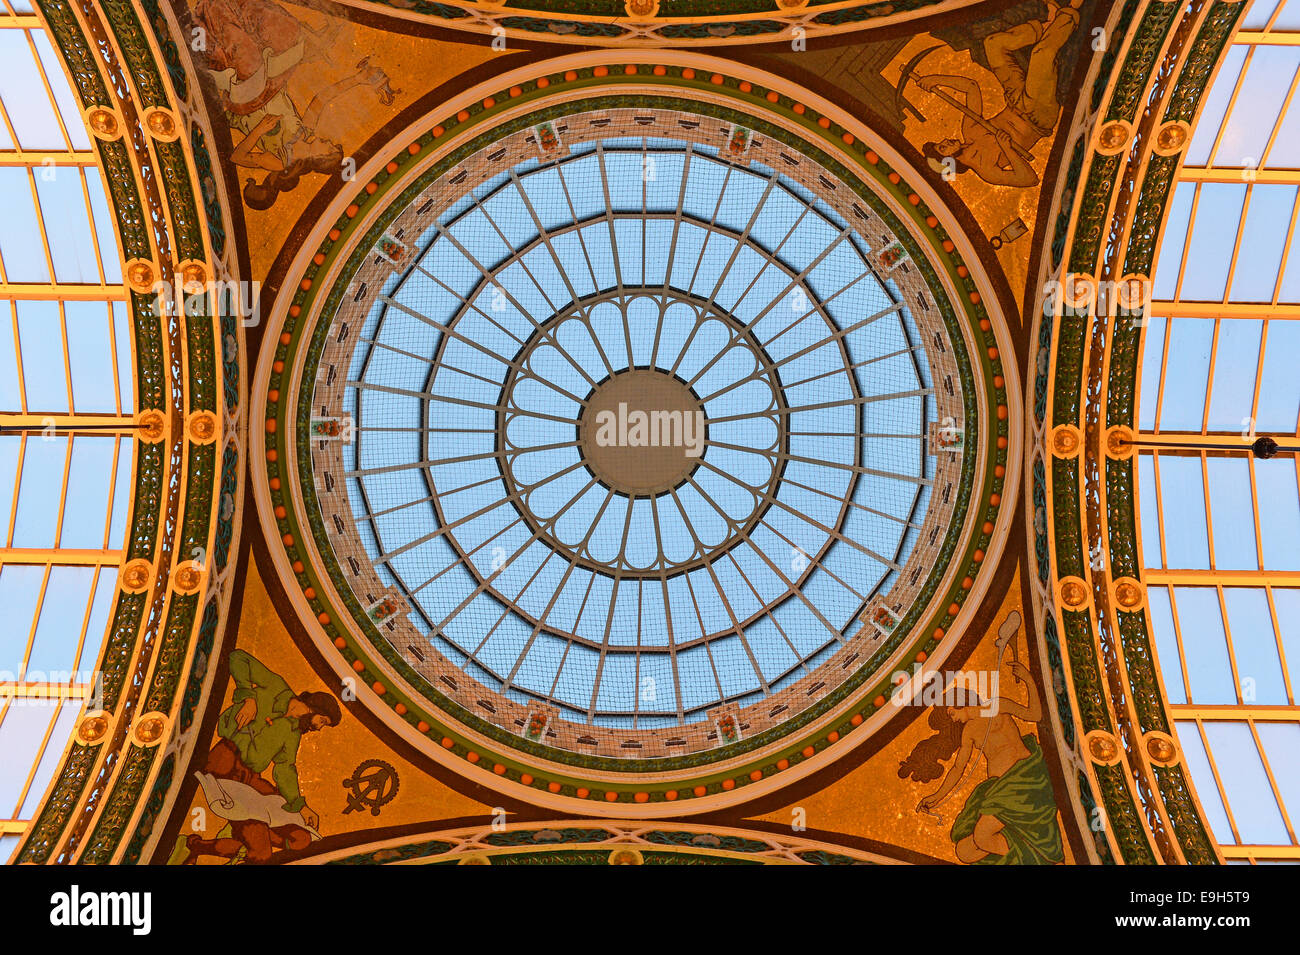 Glass rose window of the County Arcade, Victoria Quarter, Leeds, West Yorkshire, England, United Kingdom - Stock Image